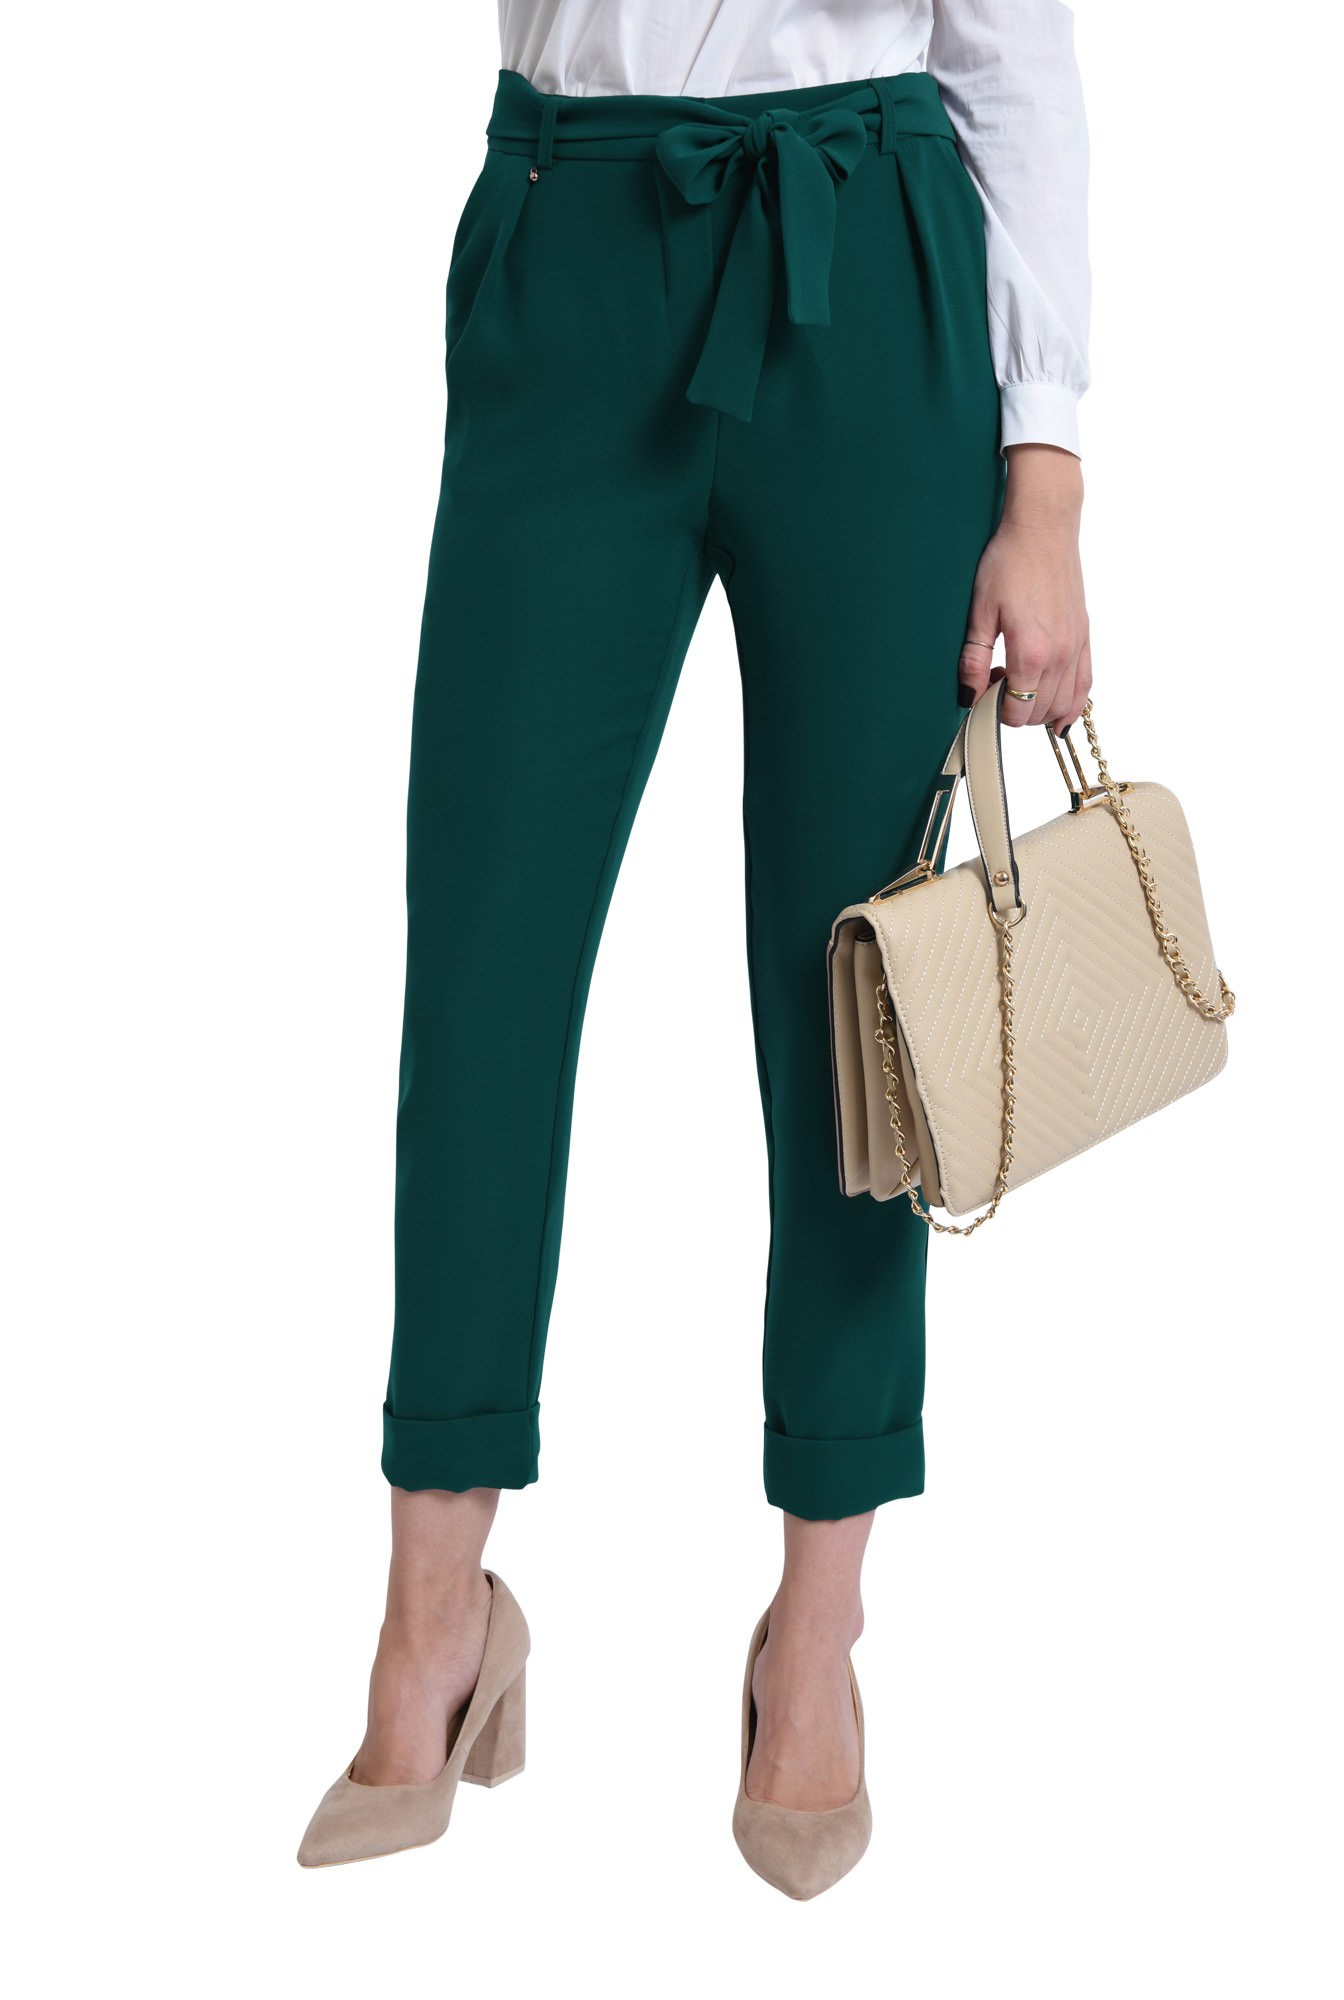 PANTALON OFFICE PT 172-VERDE